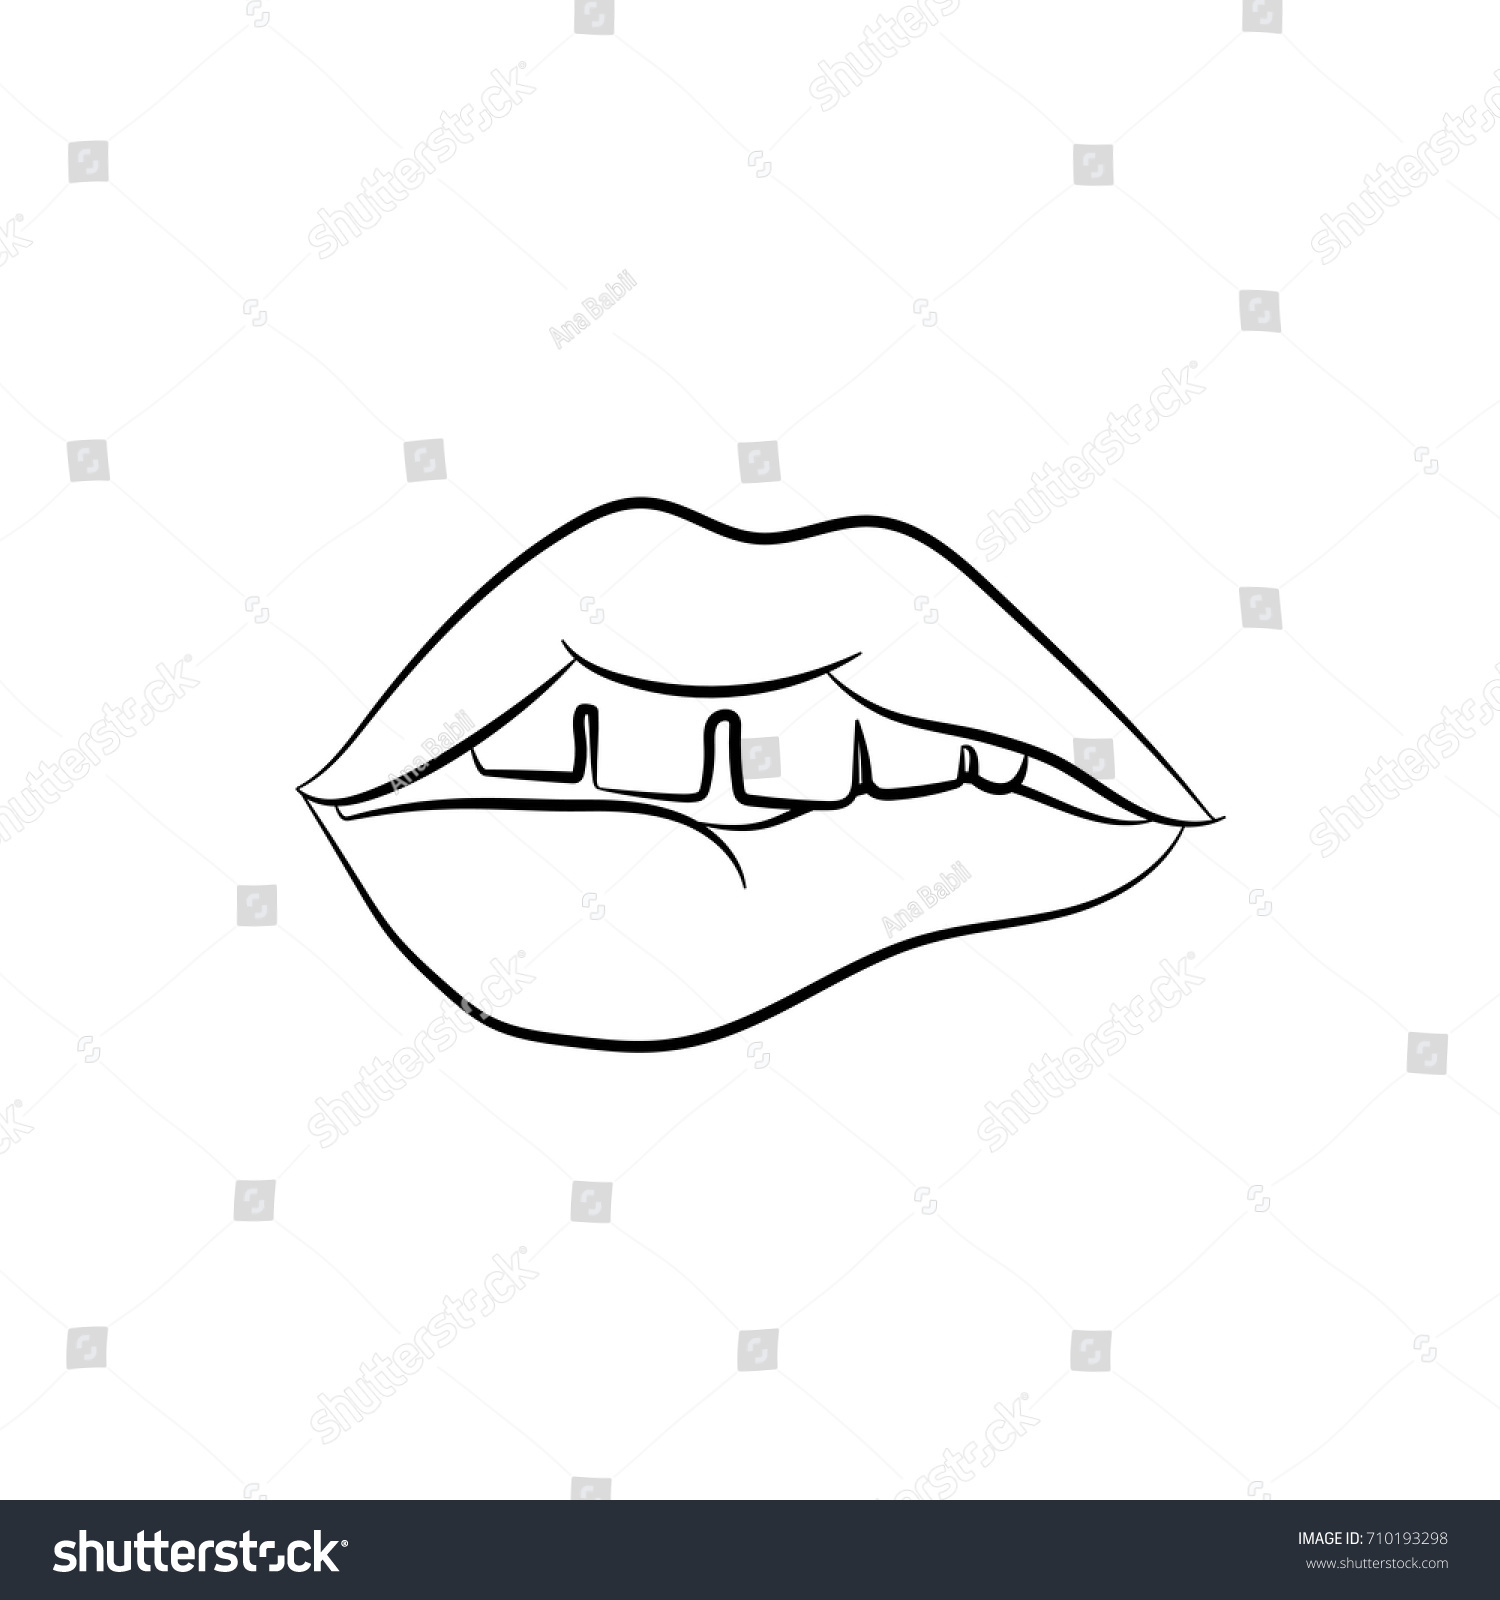 stock vector girls open mouth with lips biting female teeth pop art vector illustration black and white sketch 710193298 girls open mouth lips biting female stock vector (royalty free